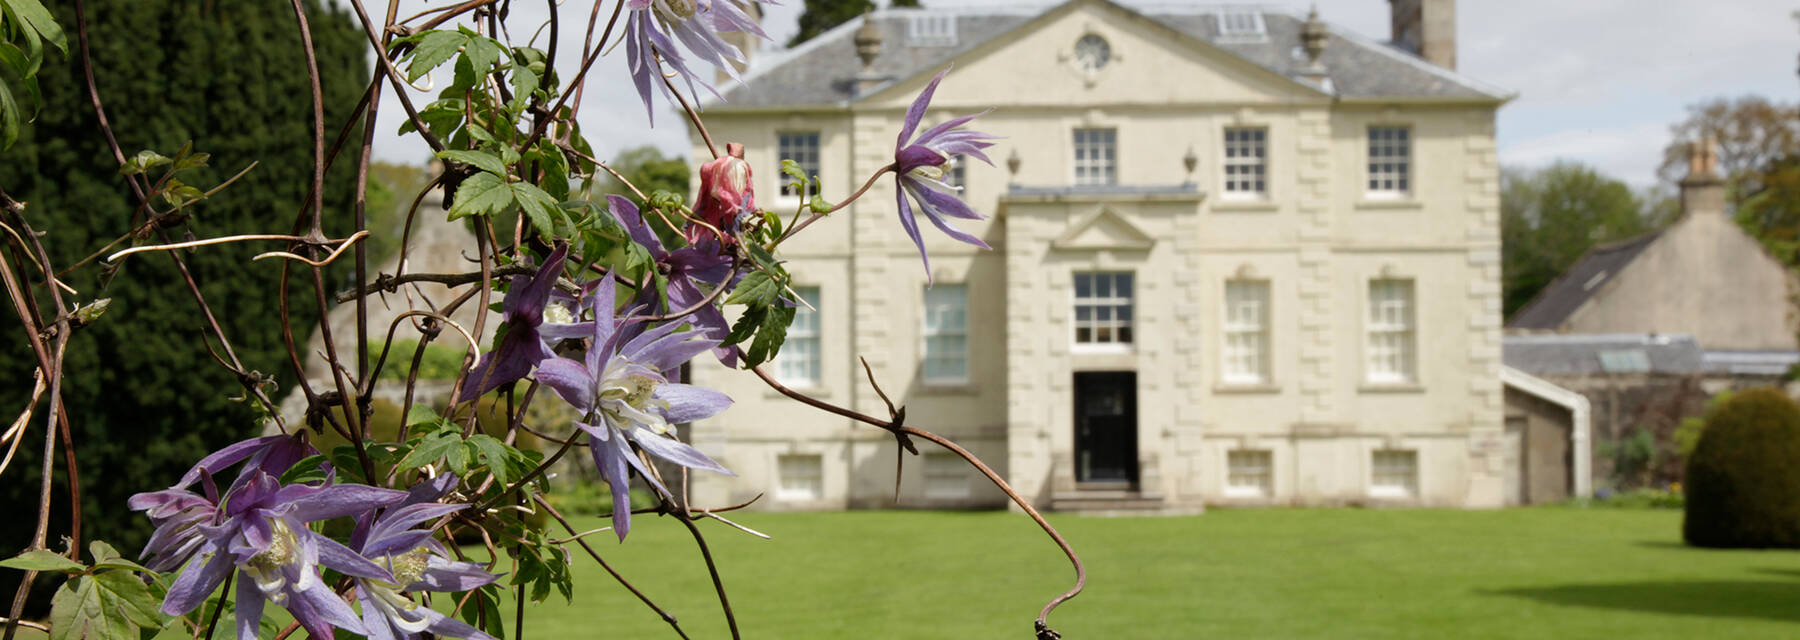 A view of the Georgian Greenbank House seen from across the lawn. A purple flowering plant is in the foreground.